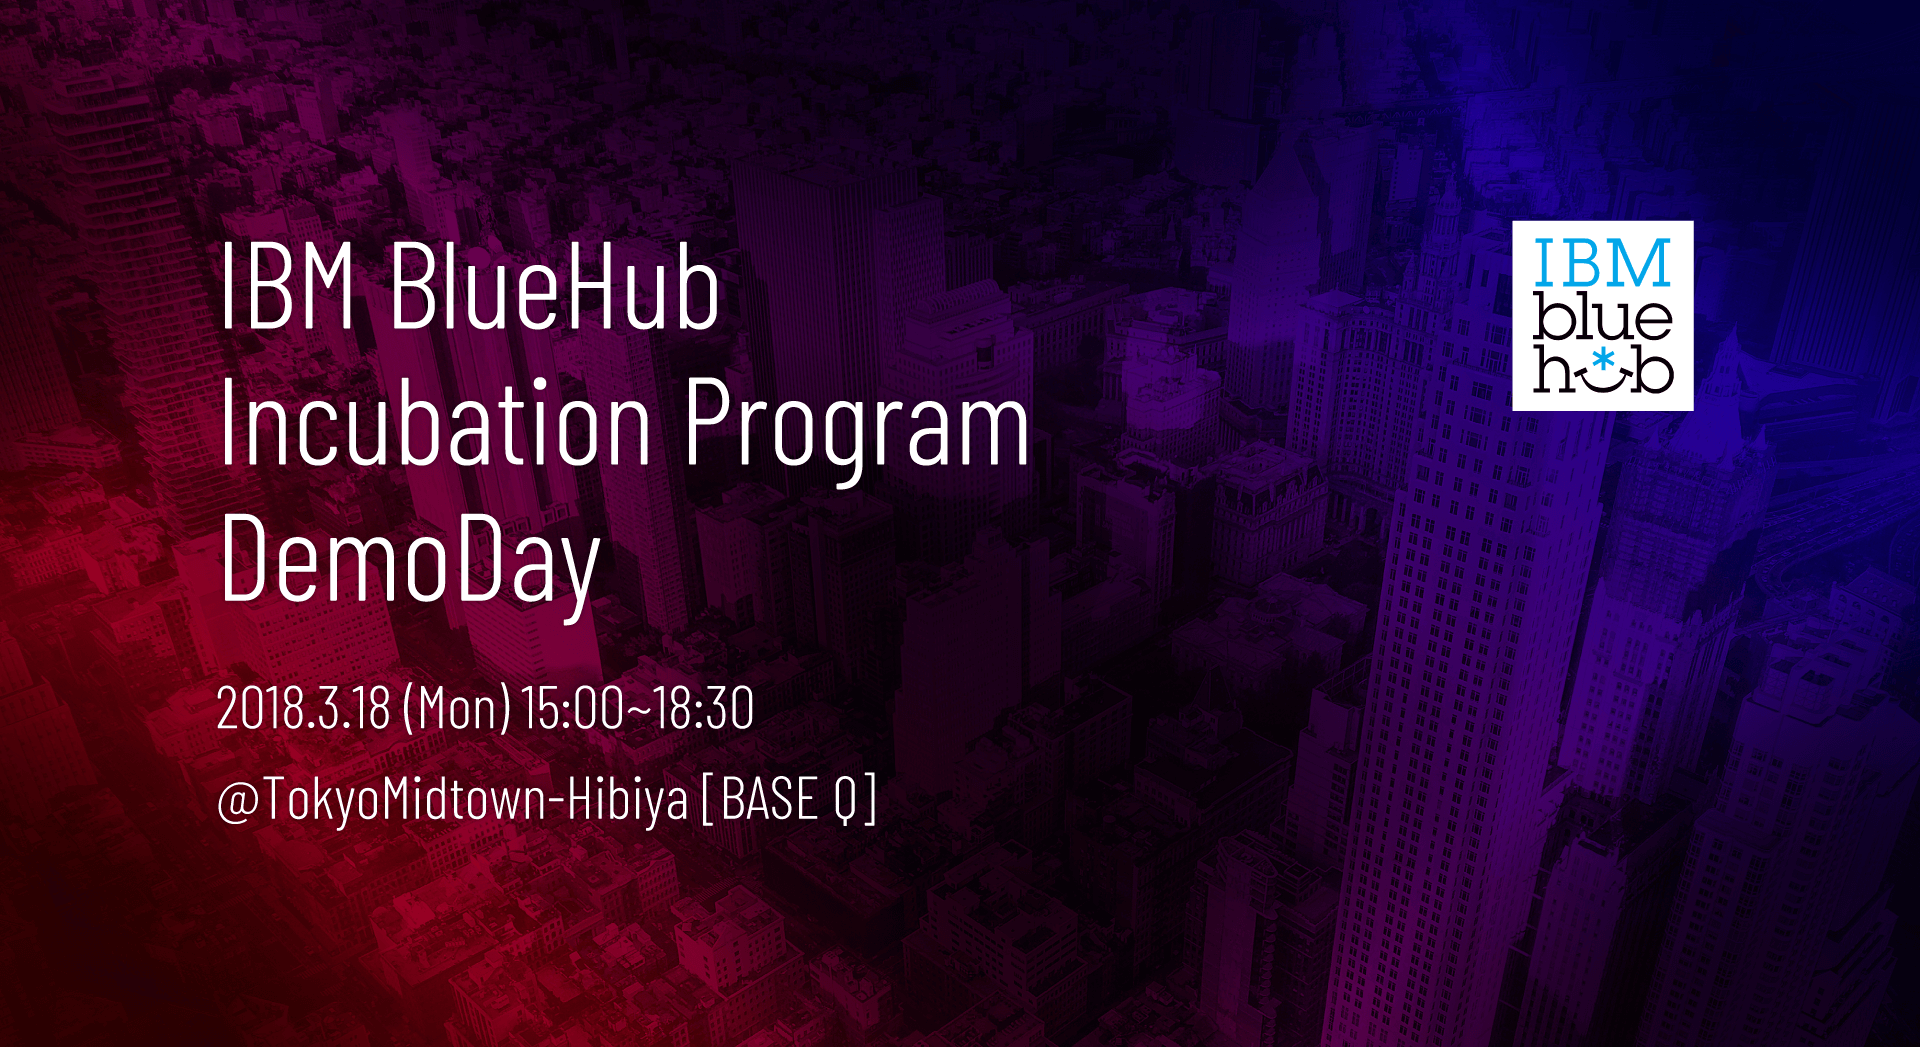 IBM BlueHub Incubation Program DemoDay